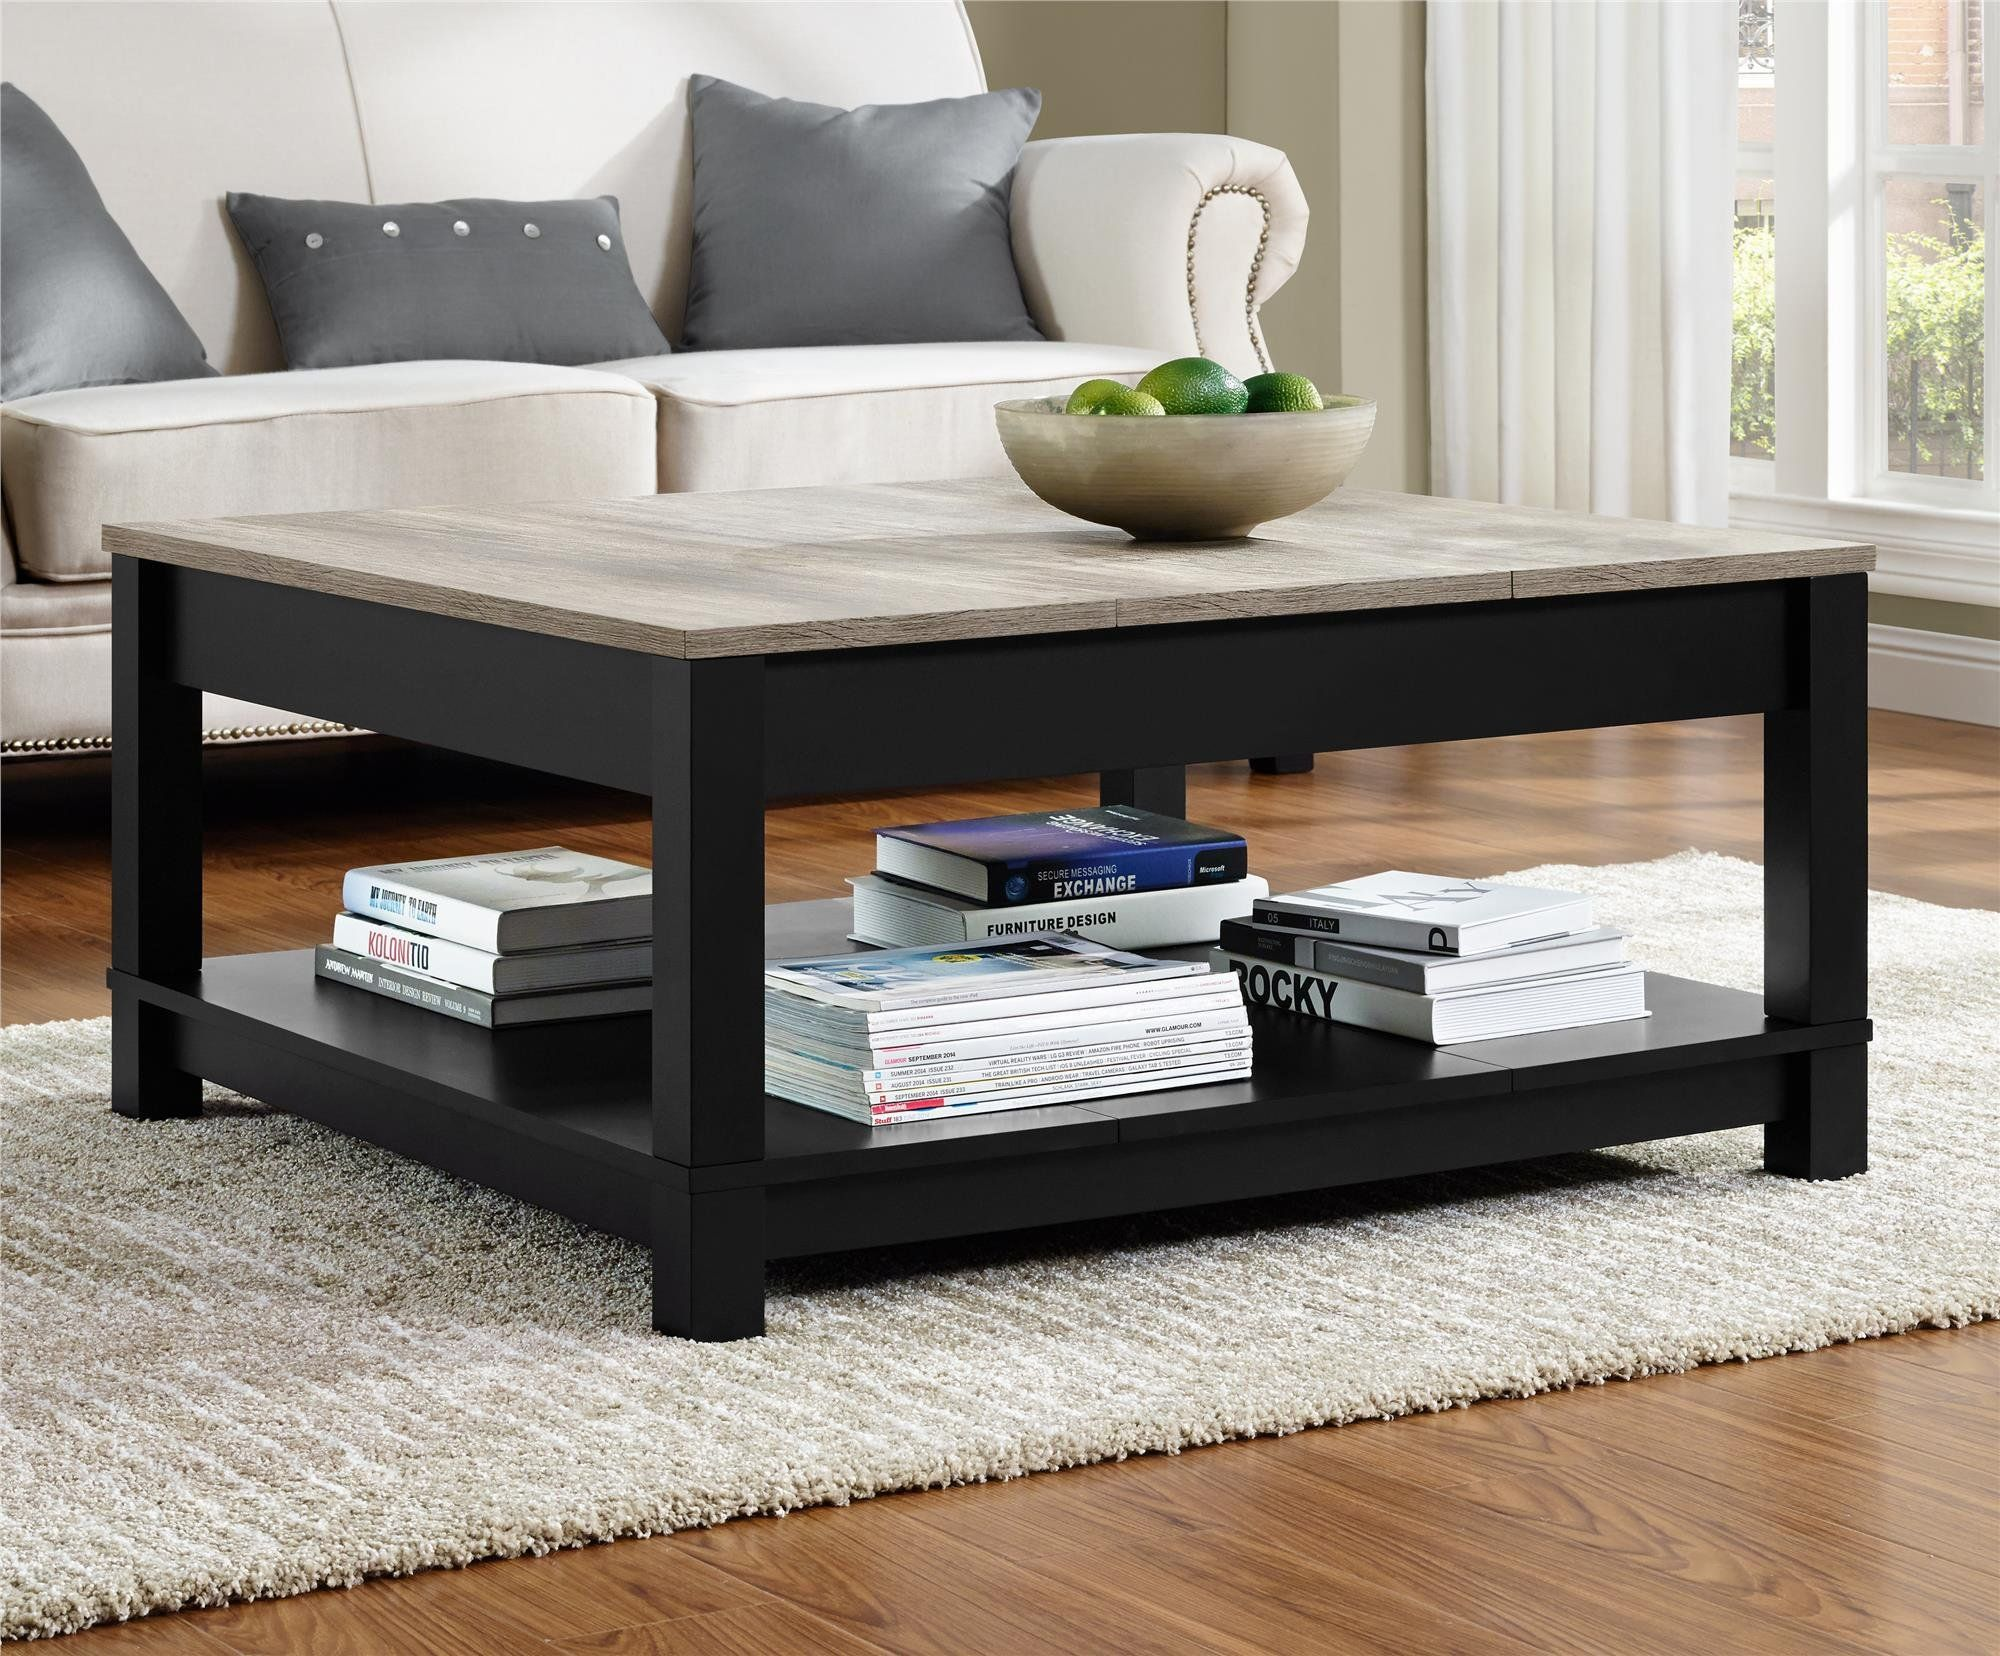 $113 Amazon Altra Furniture Carver Coffee Table Black